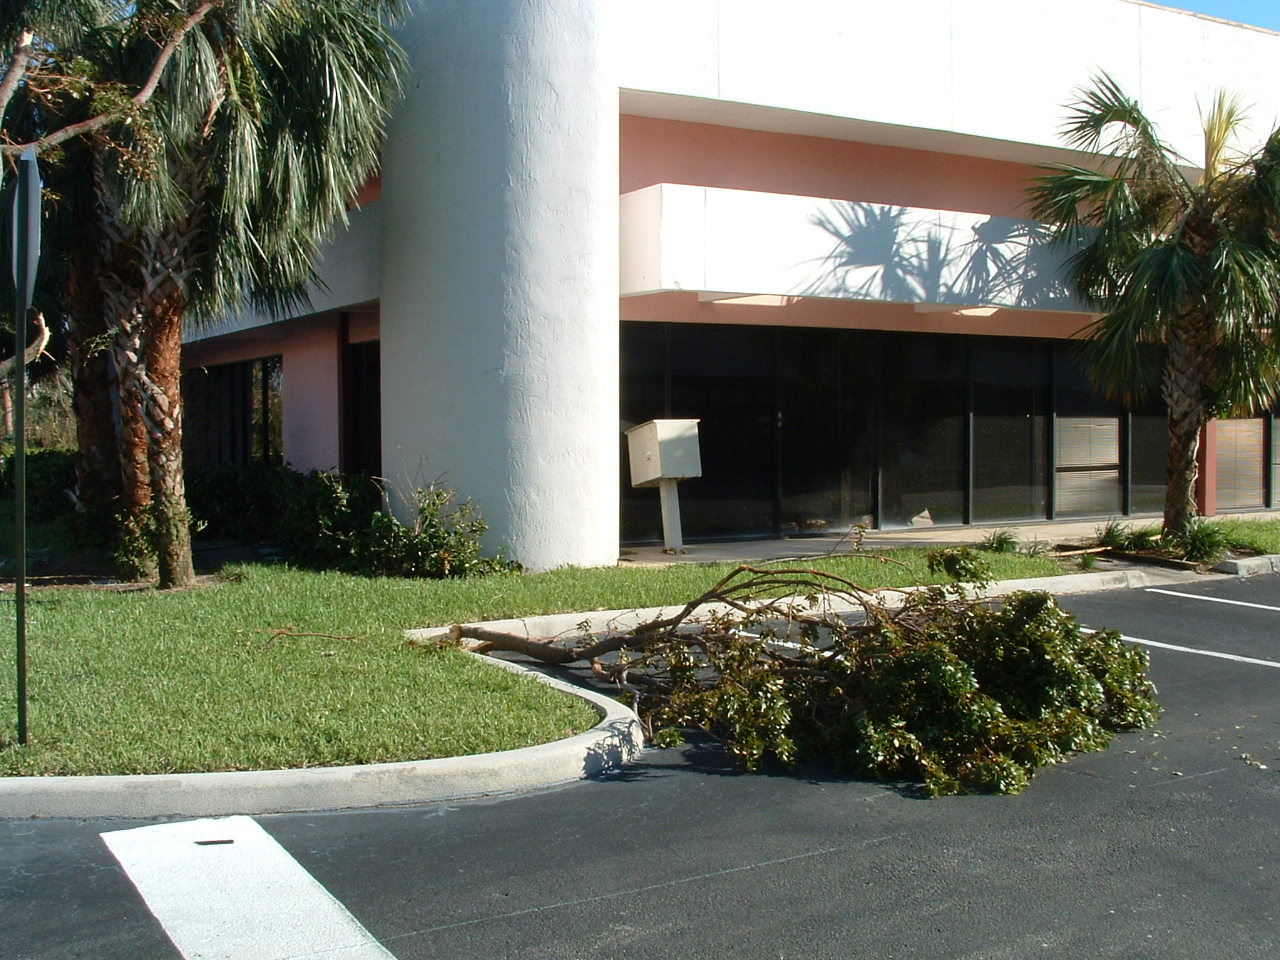 Sperry Van Ness Commercial Realty Negogiated The Lease Of +/- 8,300 Square Feet At Cypress Commerce Office Center